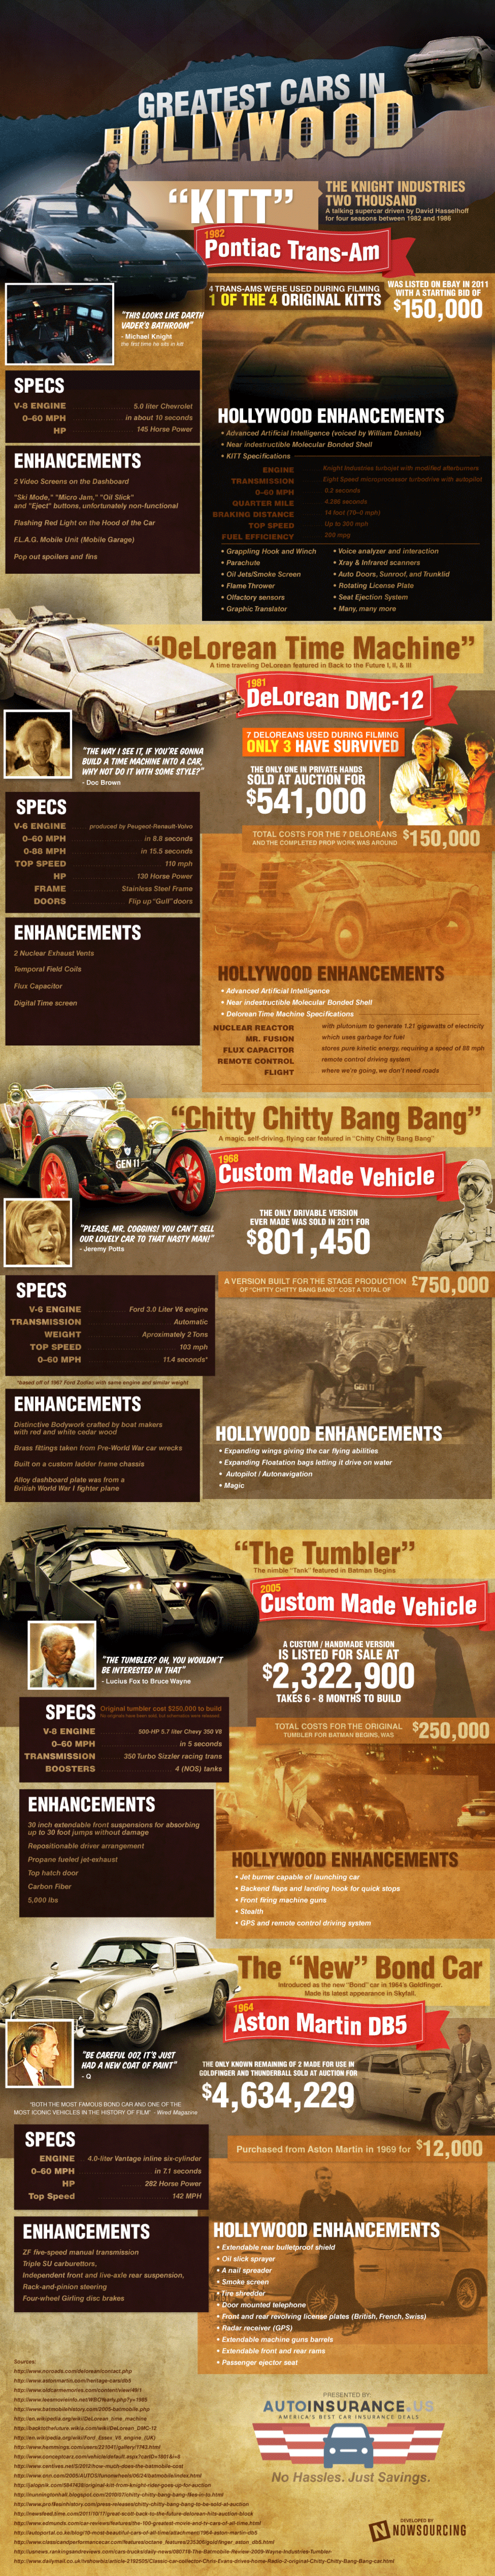 Greatest Cars In Hollywood Infographic